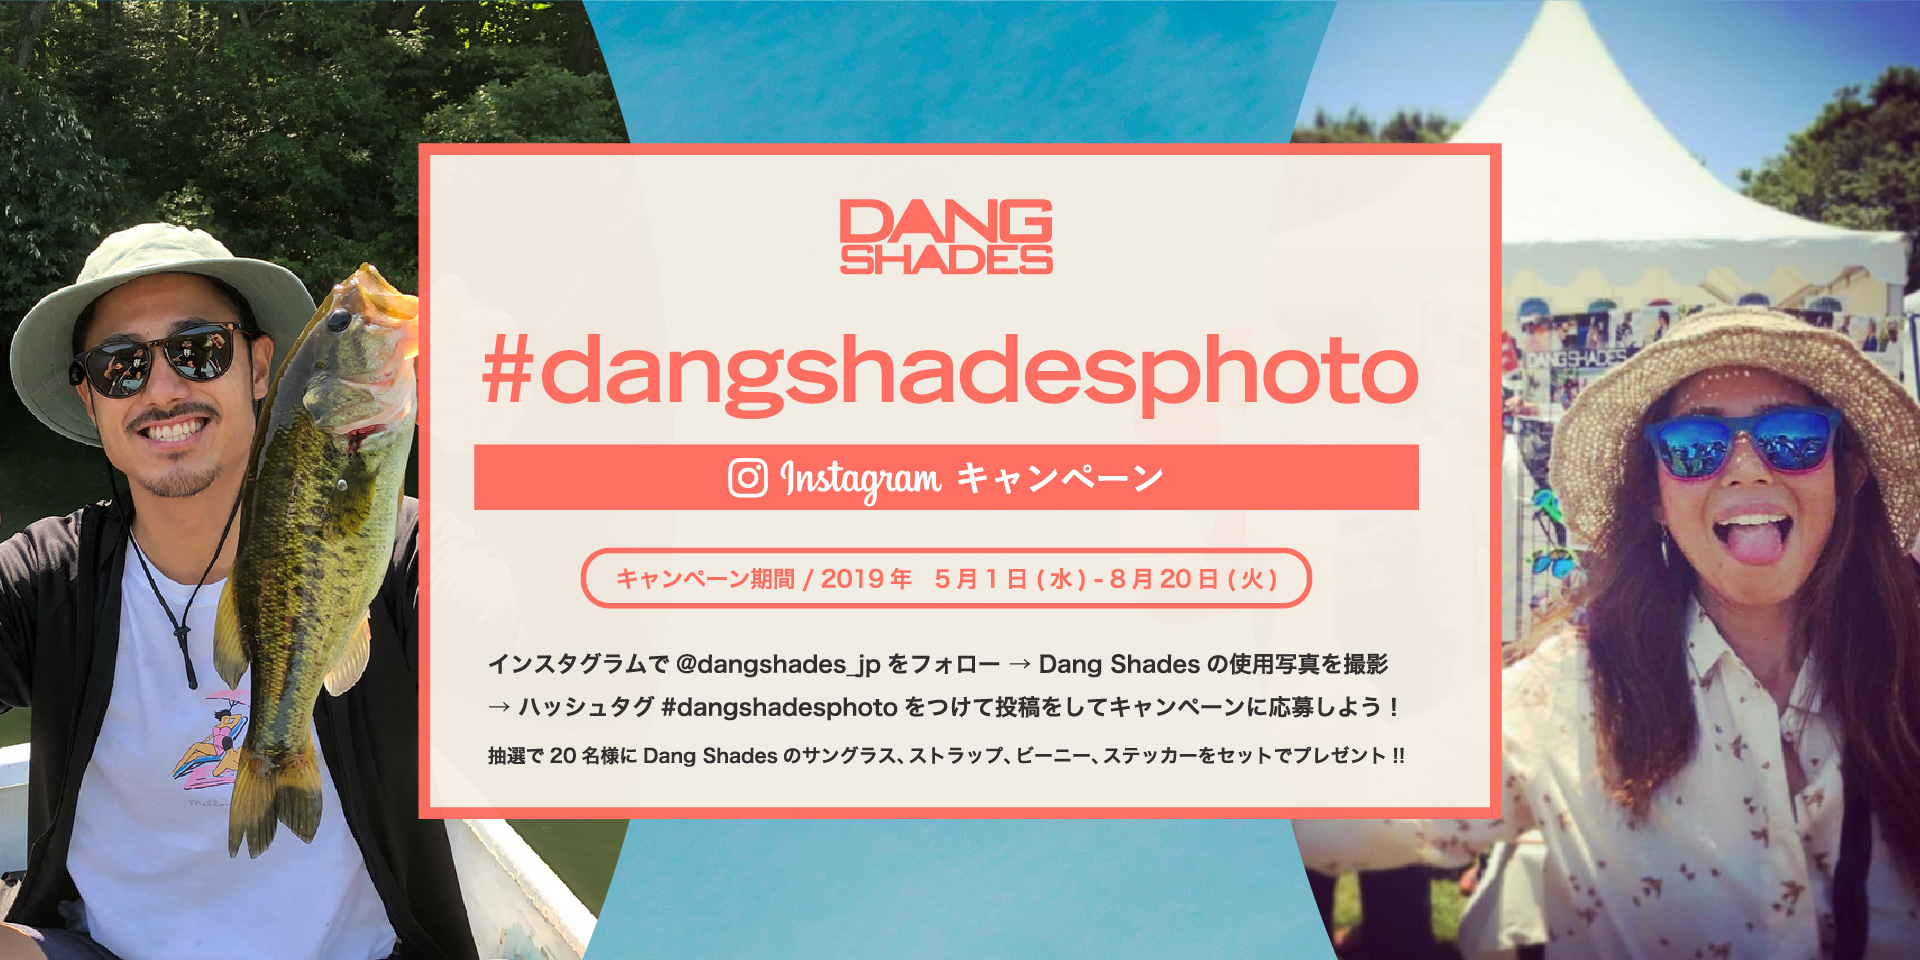 dangshadesphoto